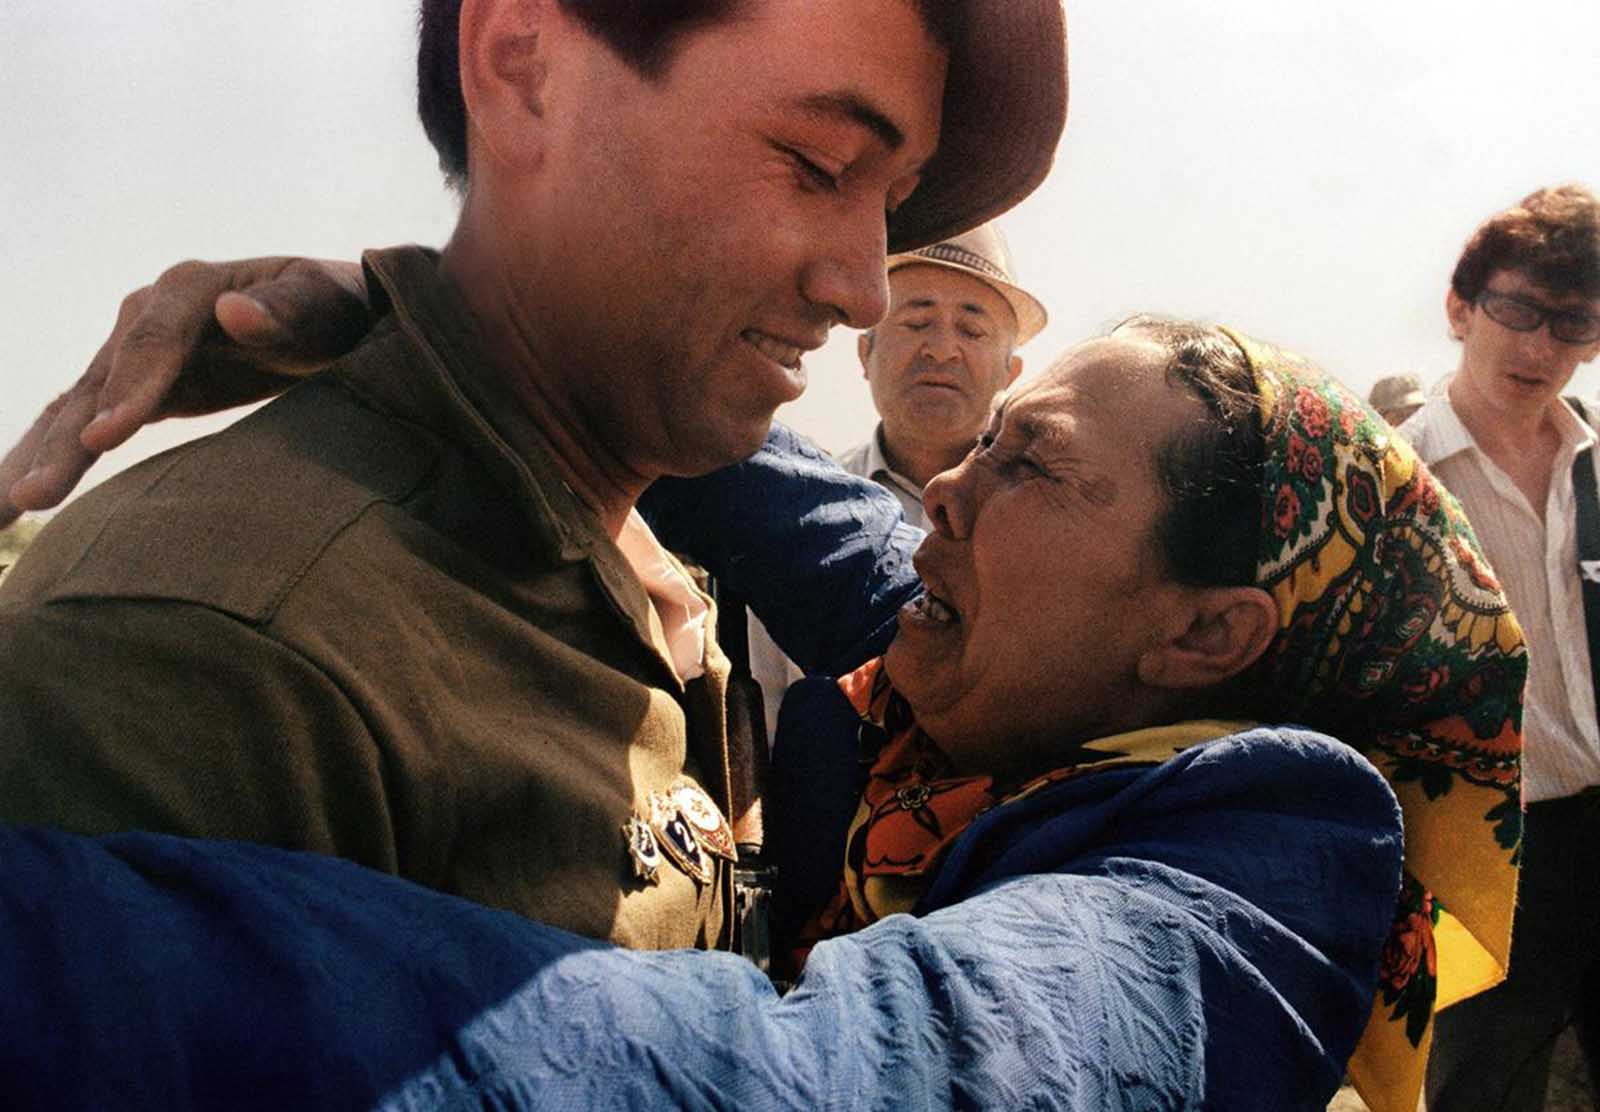 An emotional mother embraces her son, a Soviet soldier who has just crossed the Soviet-Afghan border in Termez, during the withdrawal of Soviet army from Afghanistan, on May 21, 1988.